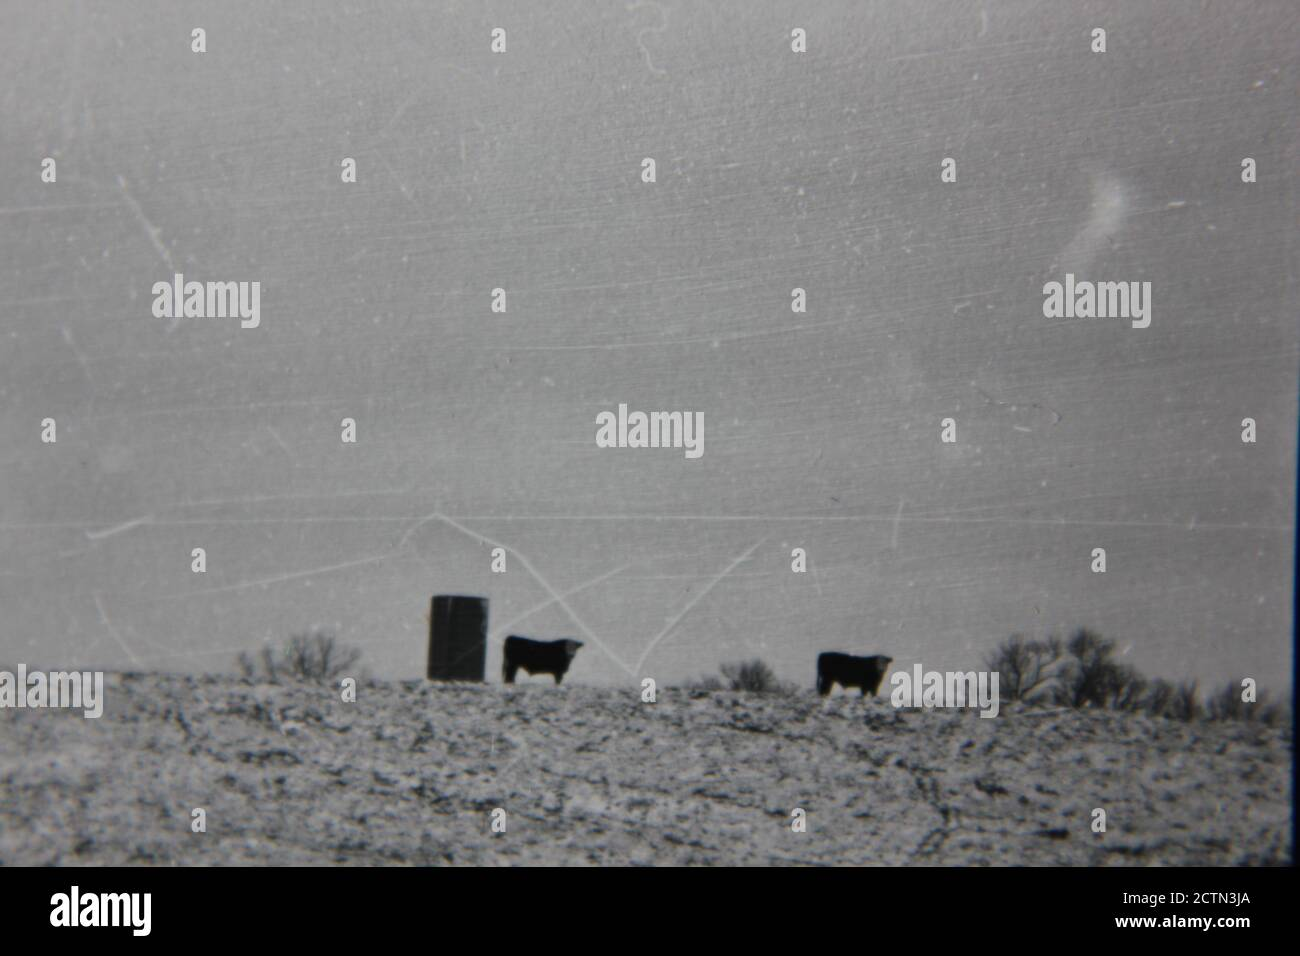 Fine 1970s vintage black and white photography of cows standing in the pasture. Stock Photo